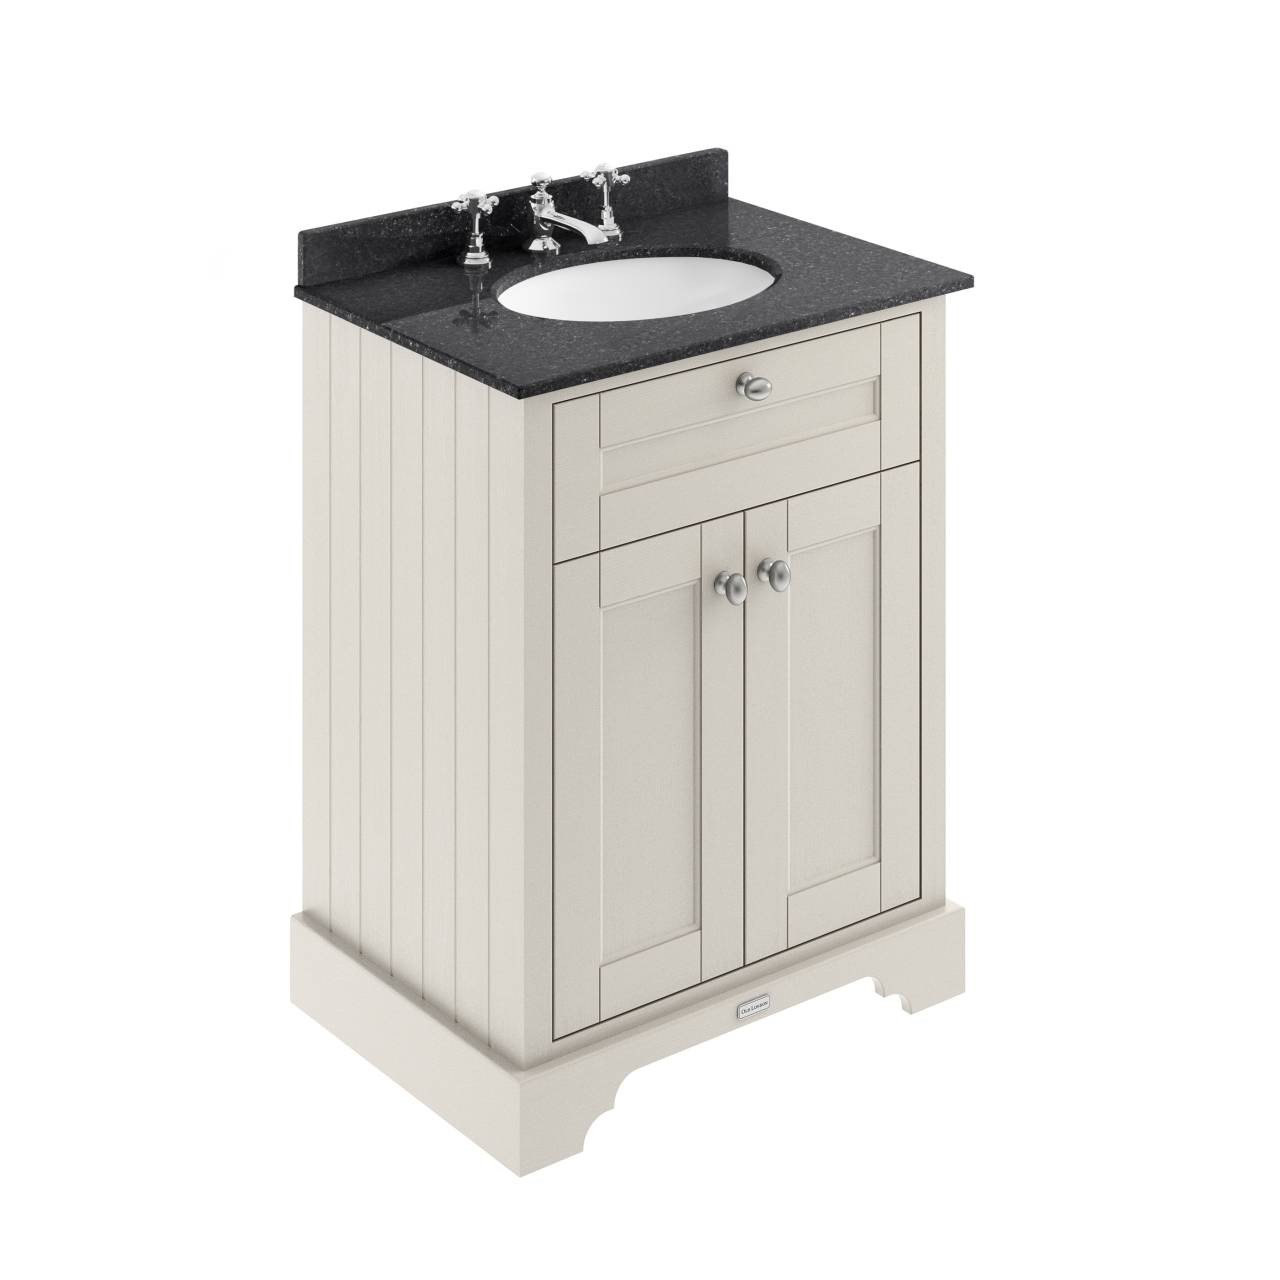 Old London Timeless Sand 600mm 2 Door Vanity Unit with Black Marble Top and Basin with 3 Tap Holes - LOF424